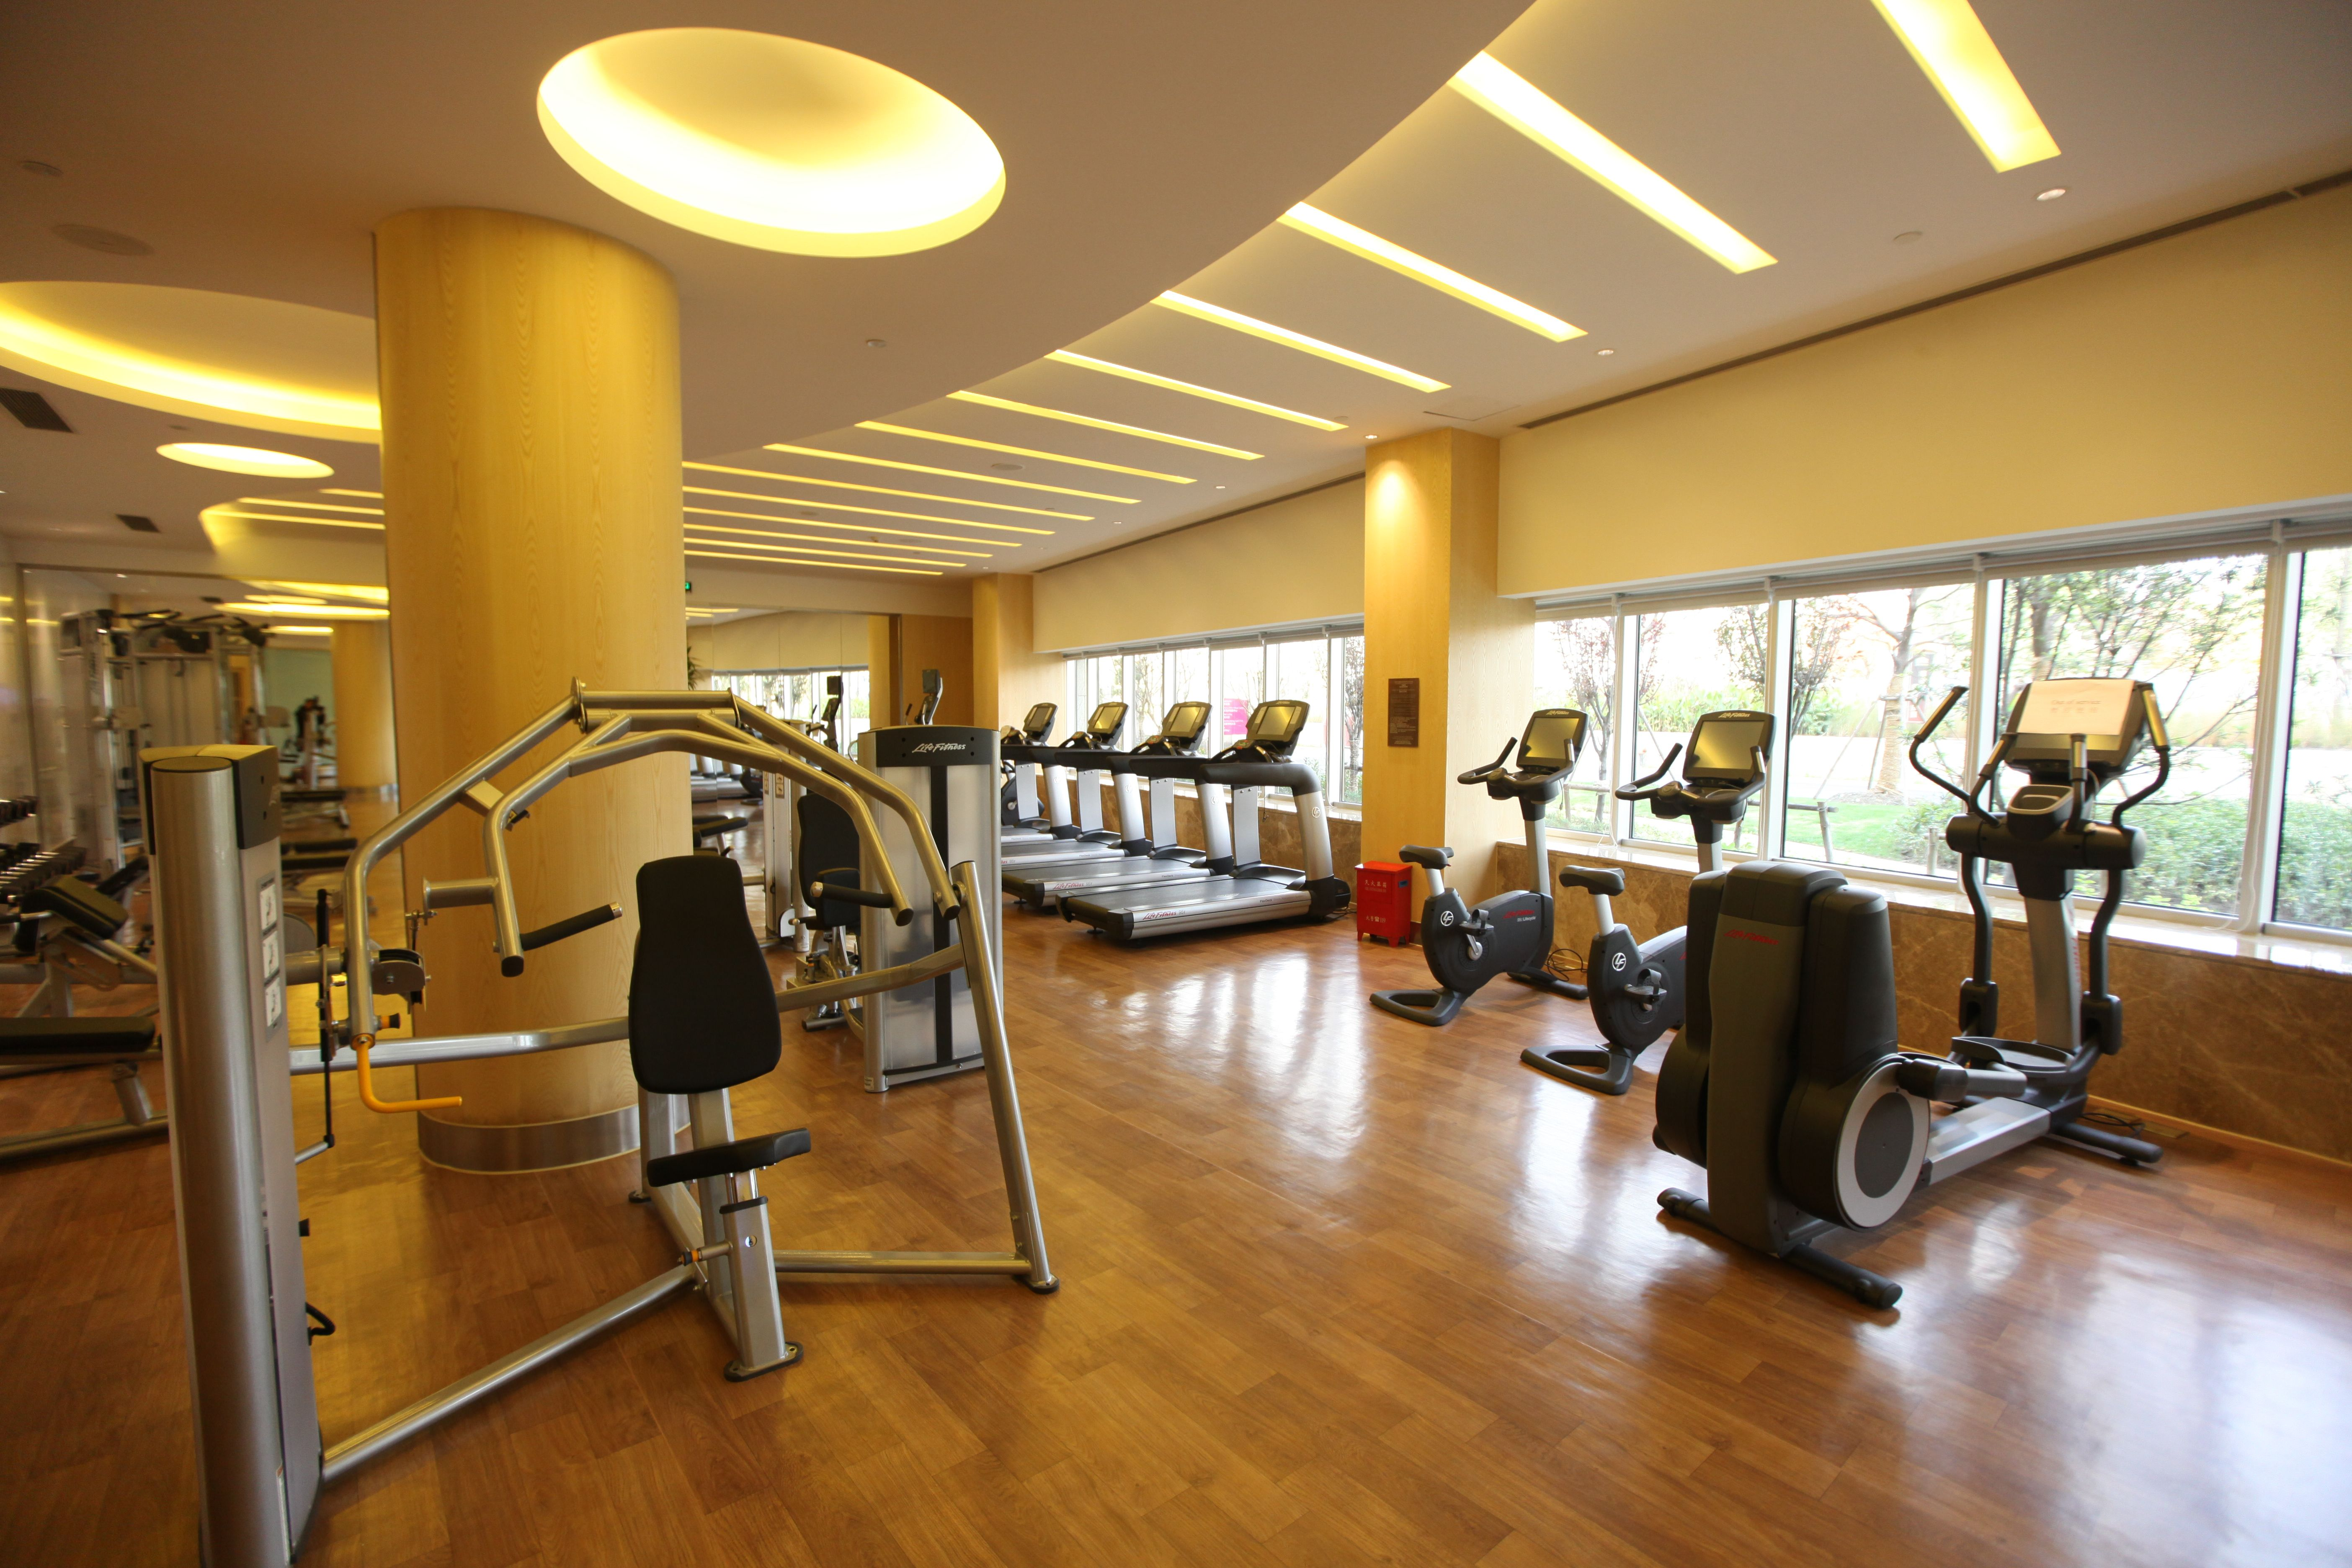 Circular Ceiling Lights With Natural Light From Glass Window At The Swing Fitness Centre In The Crowne Plaza Shanghai Anting Hotel Gym Interior Circular Ceiling Light Gym Workouts